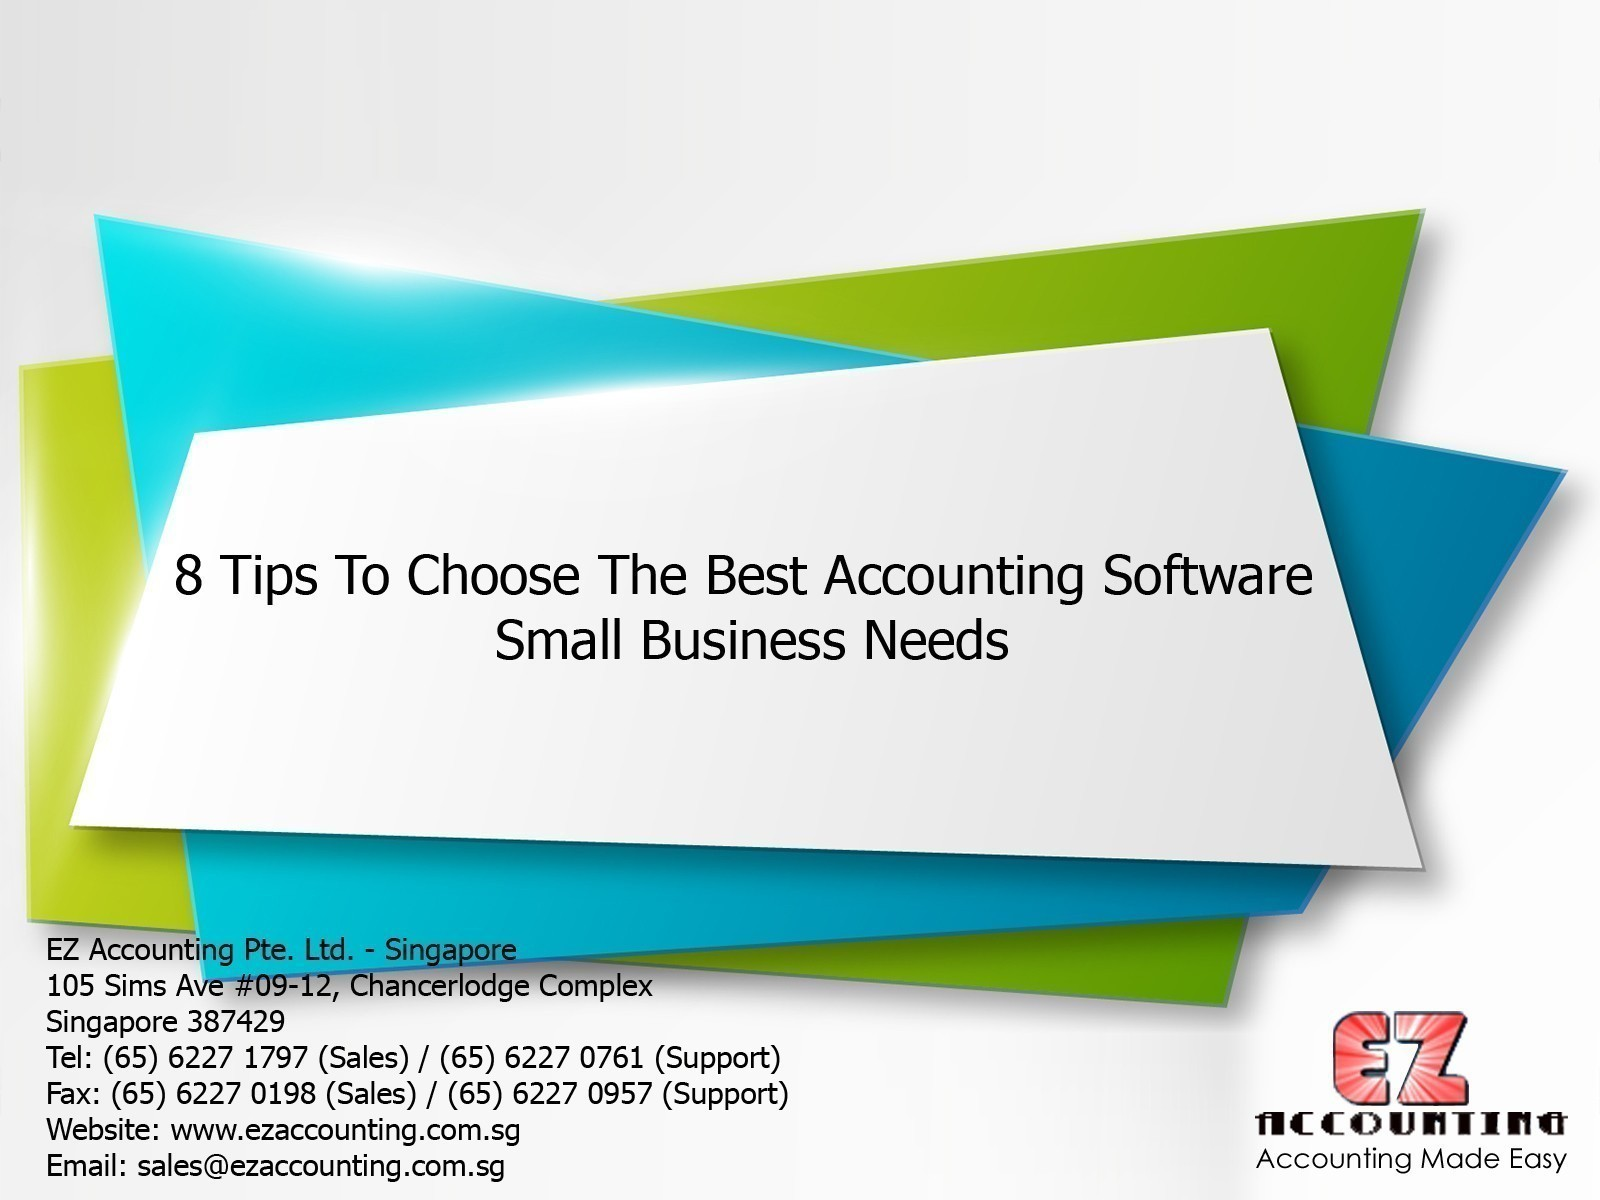 8-Tips-to-Choose-the-Best-Accounting-Software-–-Small-Business-Needs-1600x1200